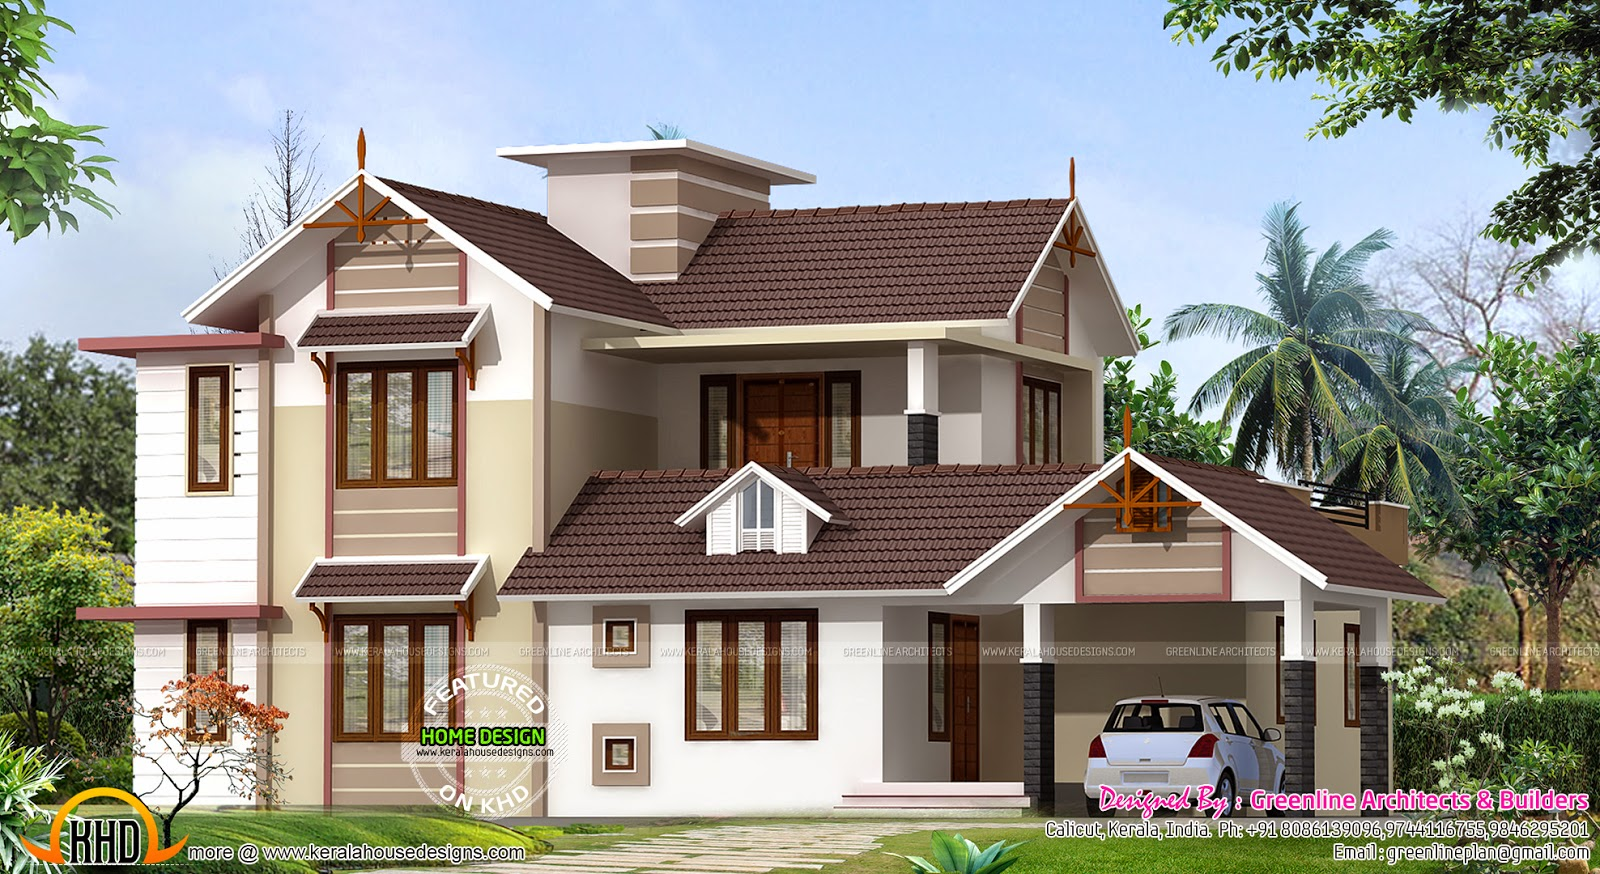 2400 sq ft new house design kerala home design and floor for Home plans with interior photos